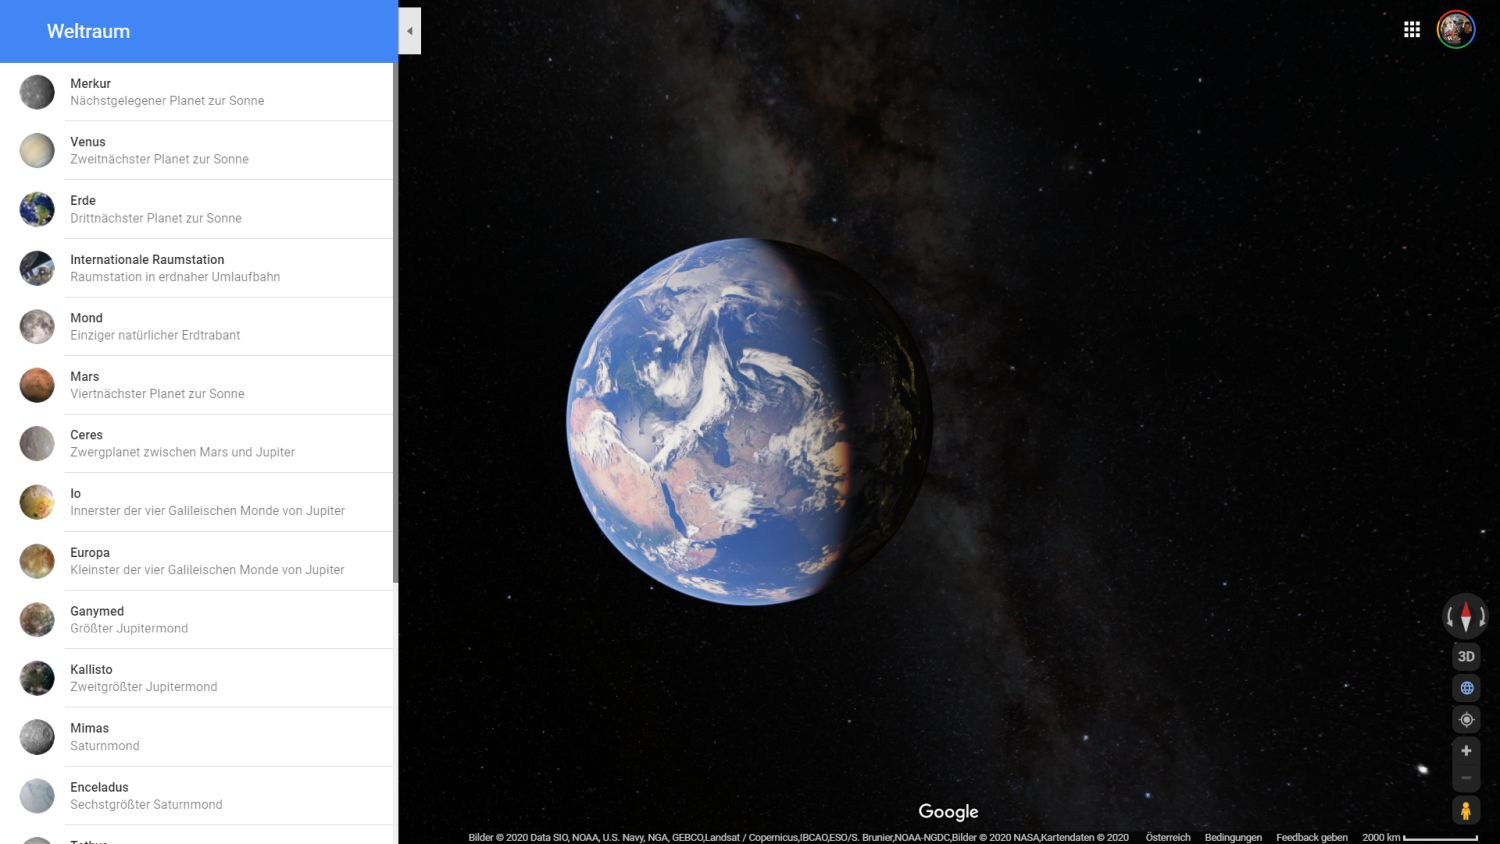 google maps space earth view